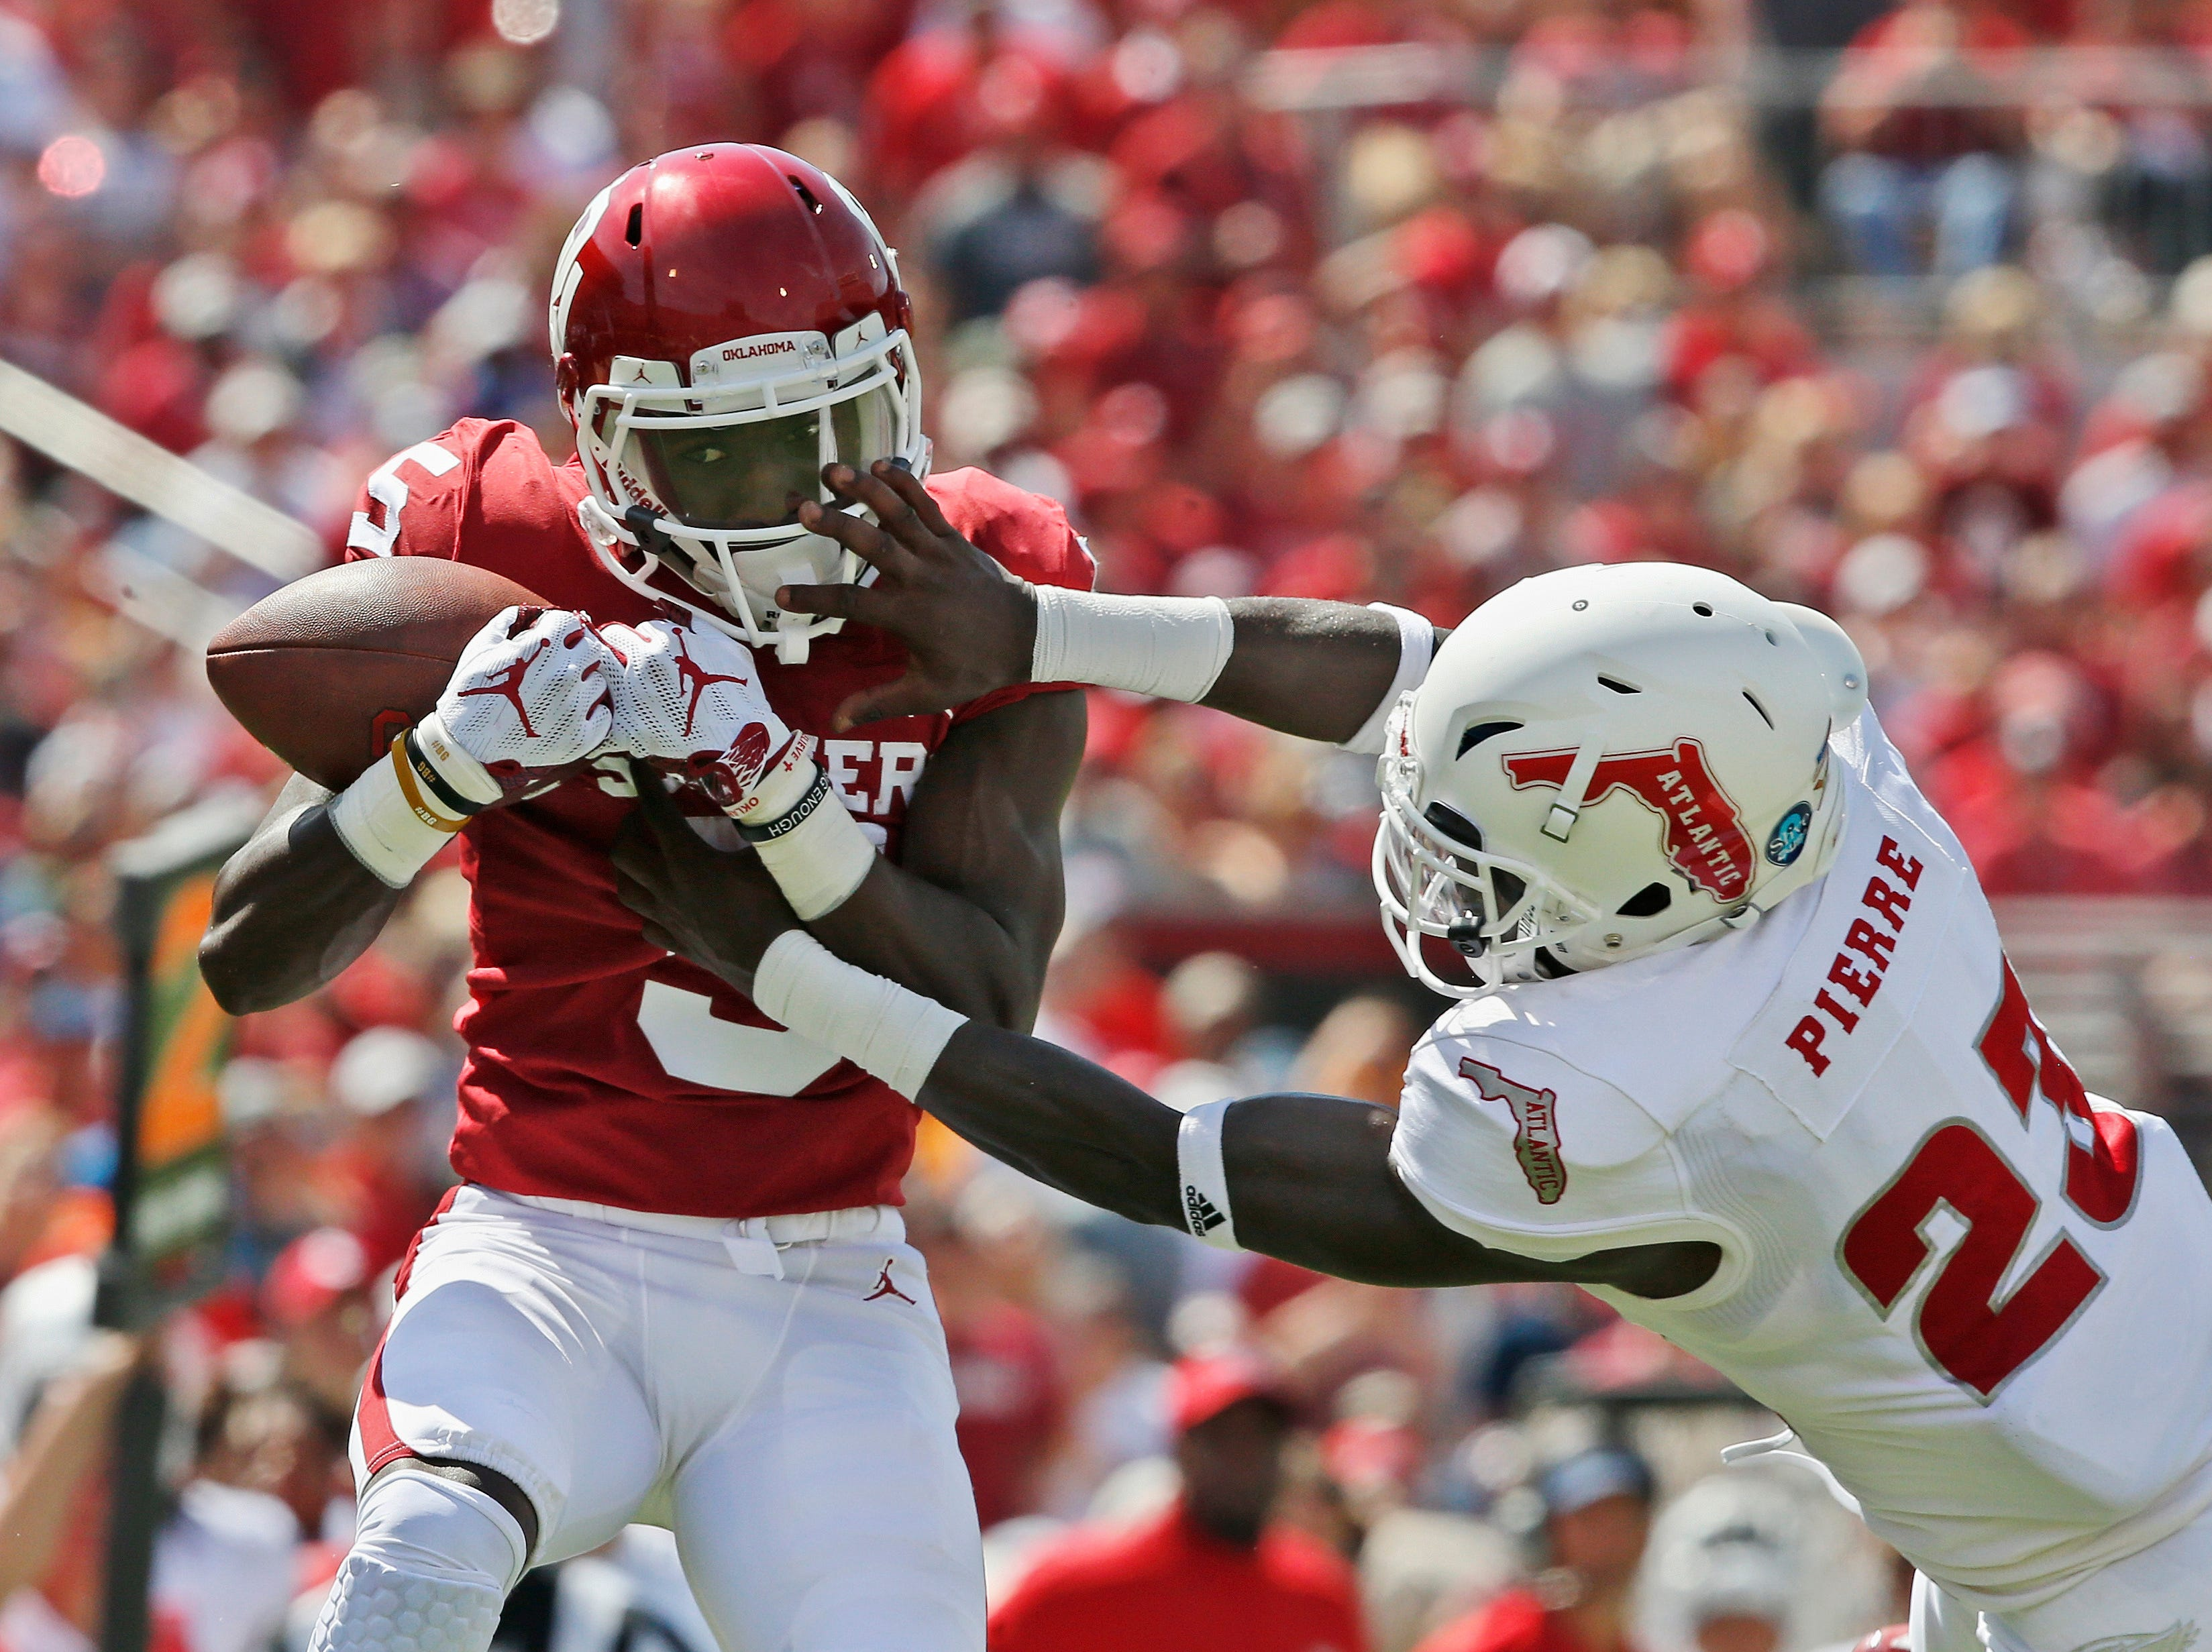 Oklahoma wide receiver Marquise Brown (5) catches a pass defended by Florida Atlantic safety James Pierre (23) in the first half of an NCAA college football game in Norman, Okla., Saturday, Sept. 1, 2018.